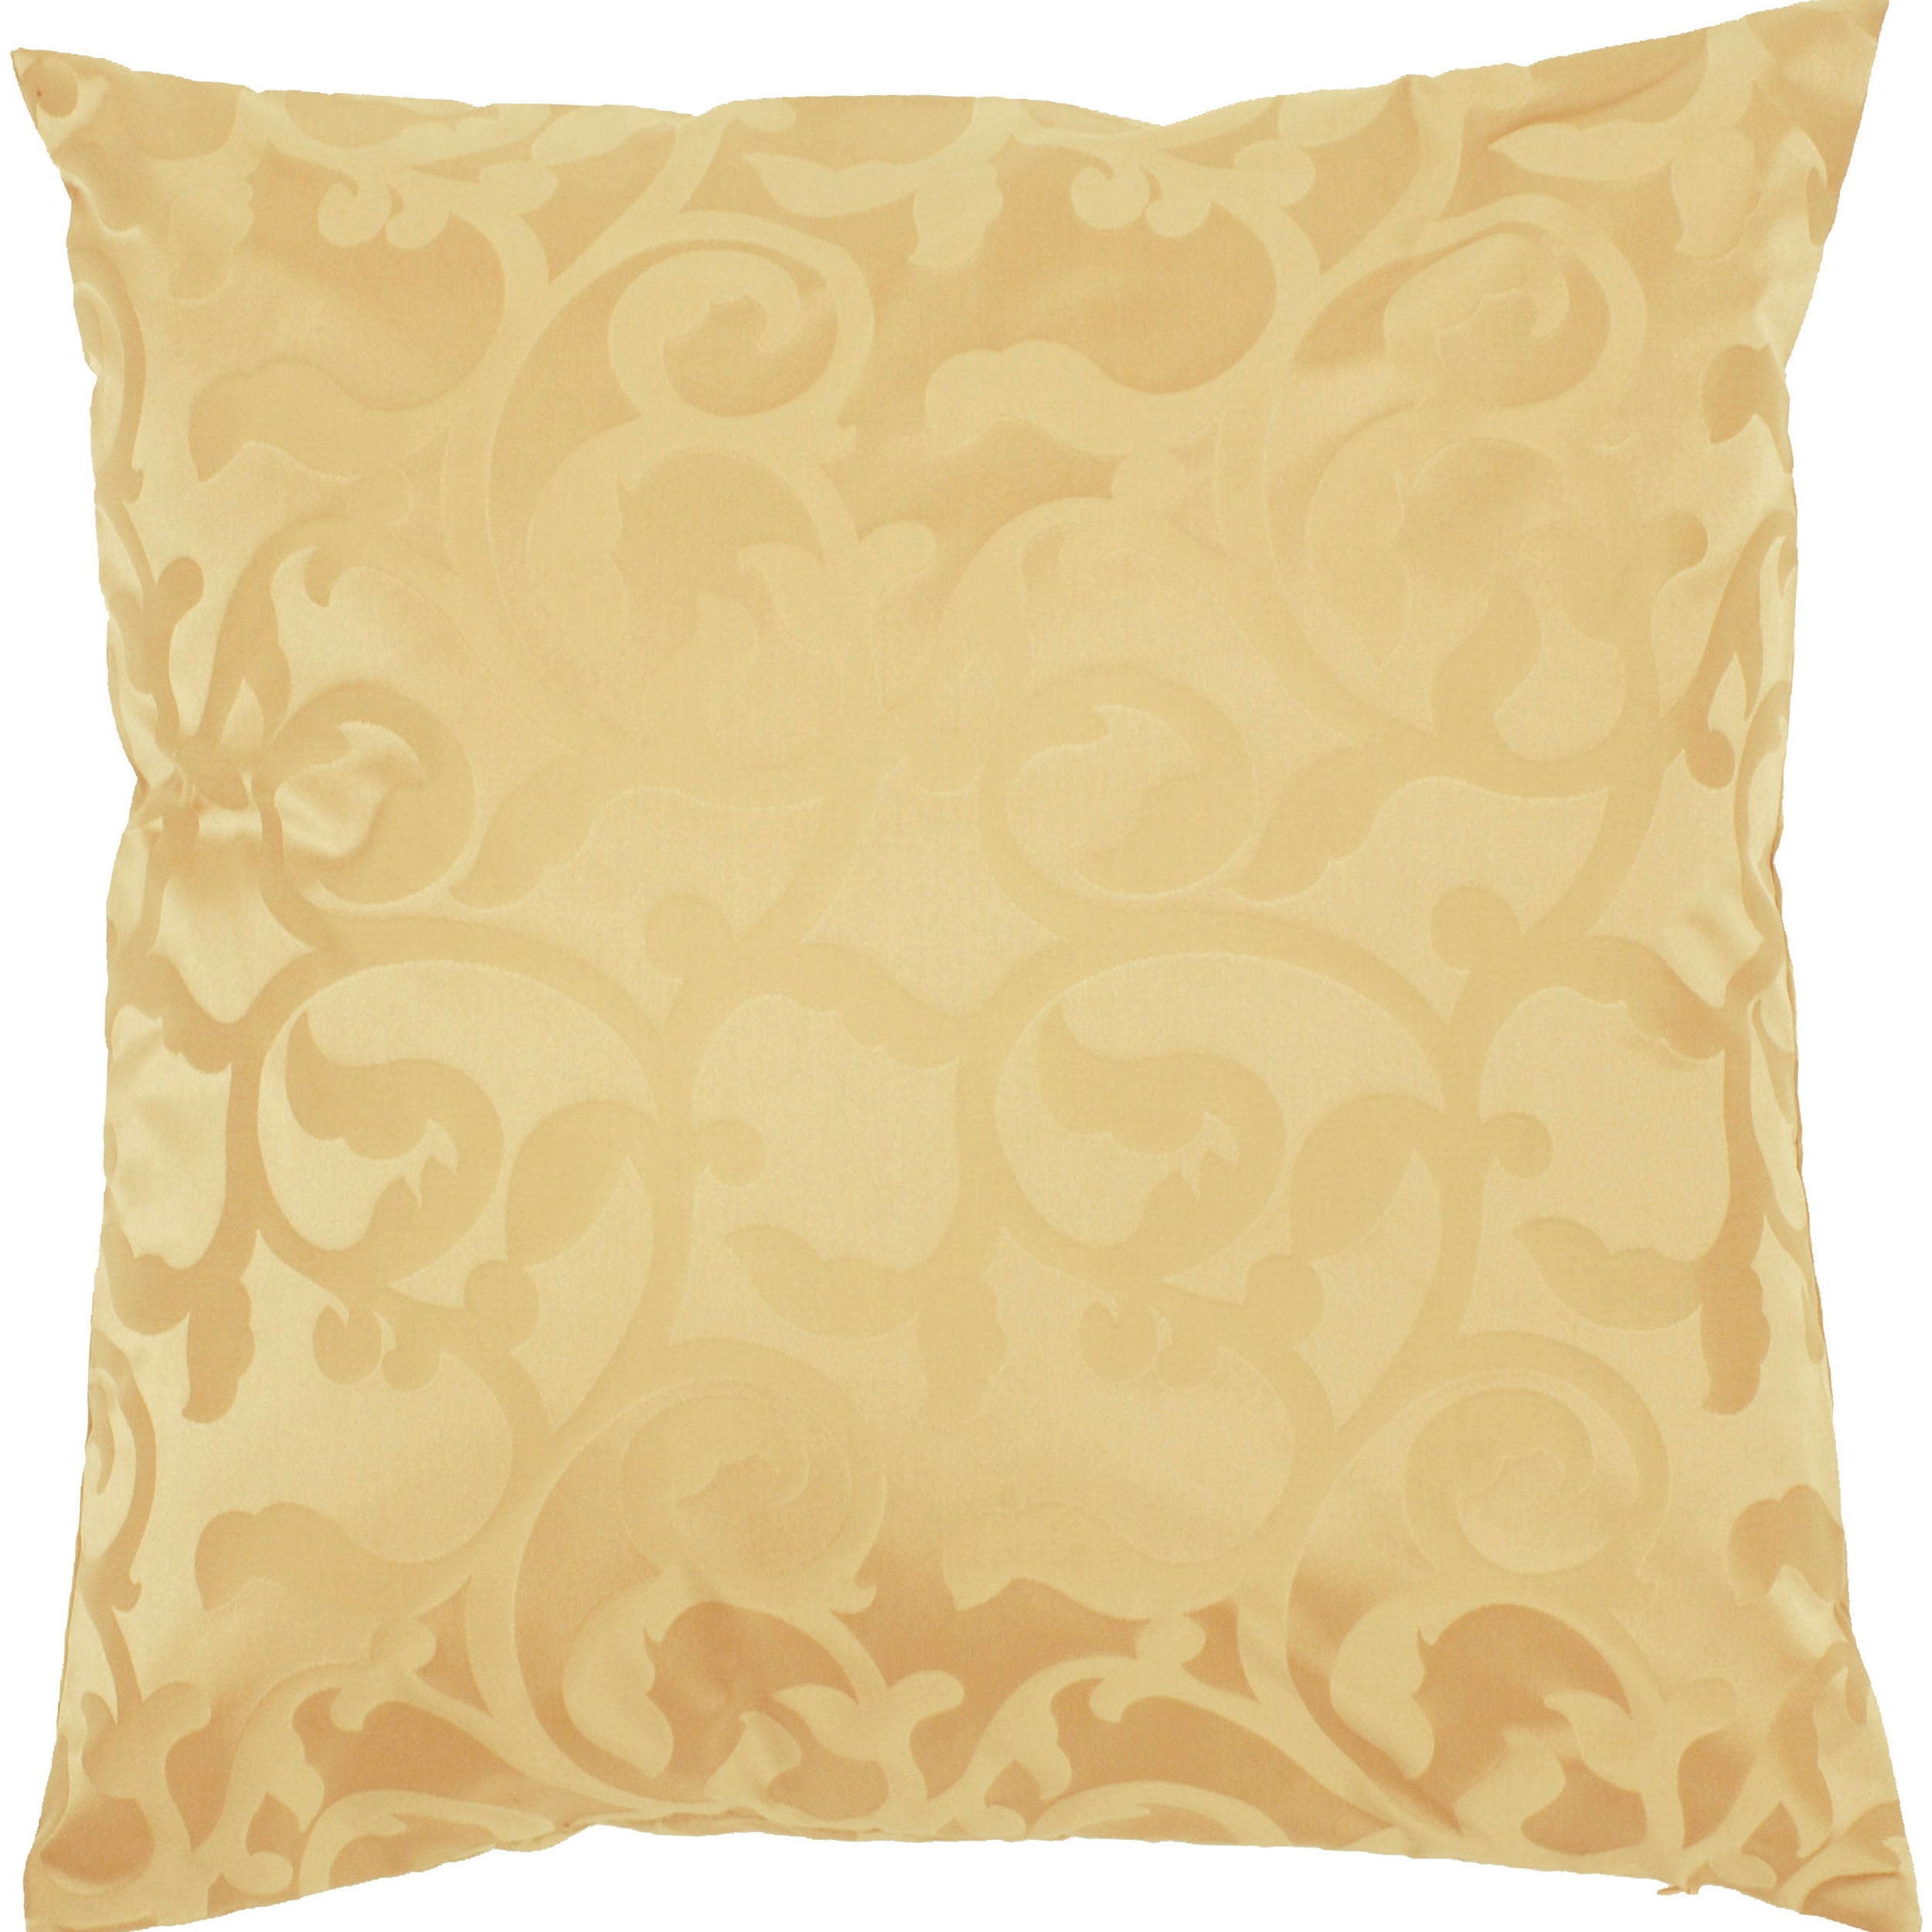 Throw Pillows On Konga : Decorative 18-inch Manchester Pillow - 14048766 - Overstock.com Shopping - Great Deals on Surya ...